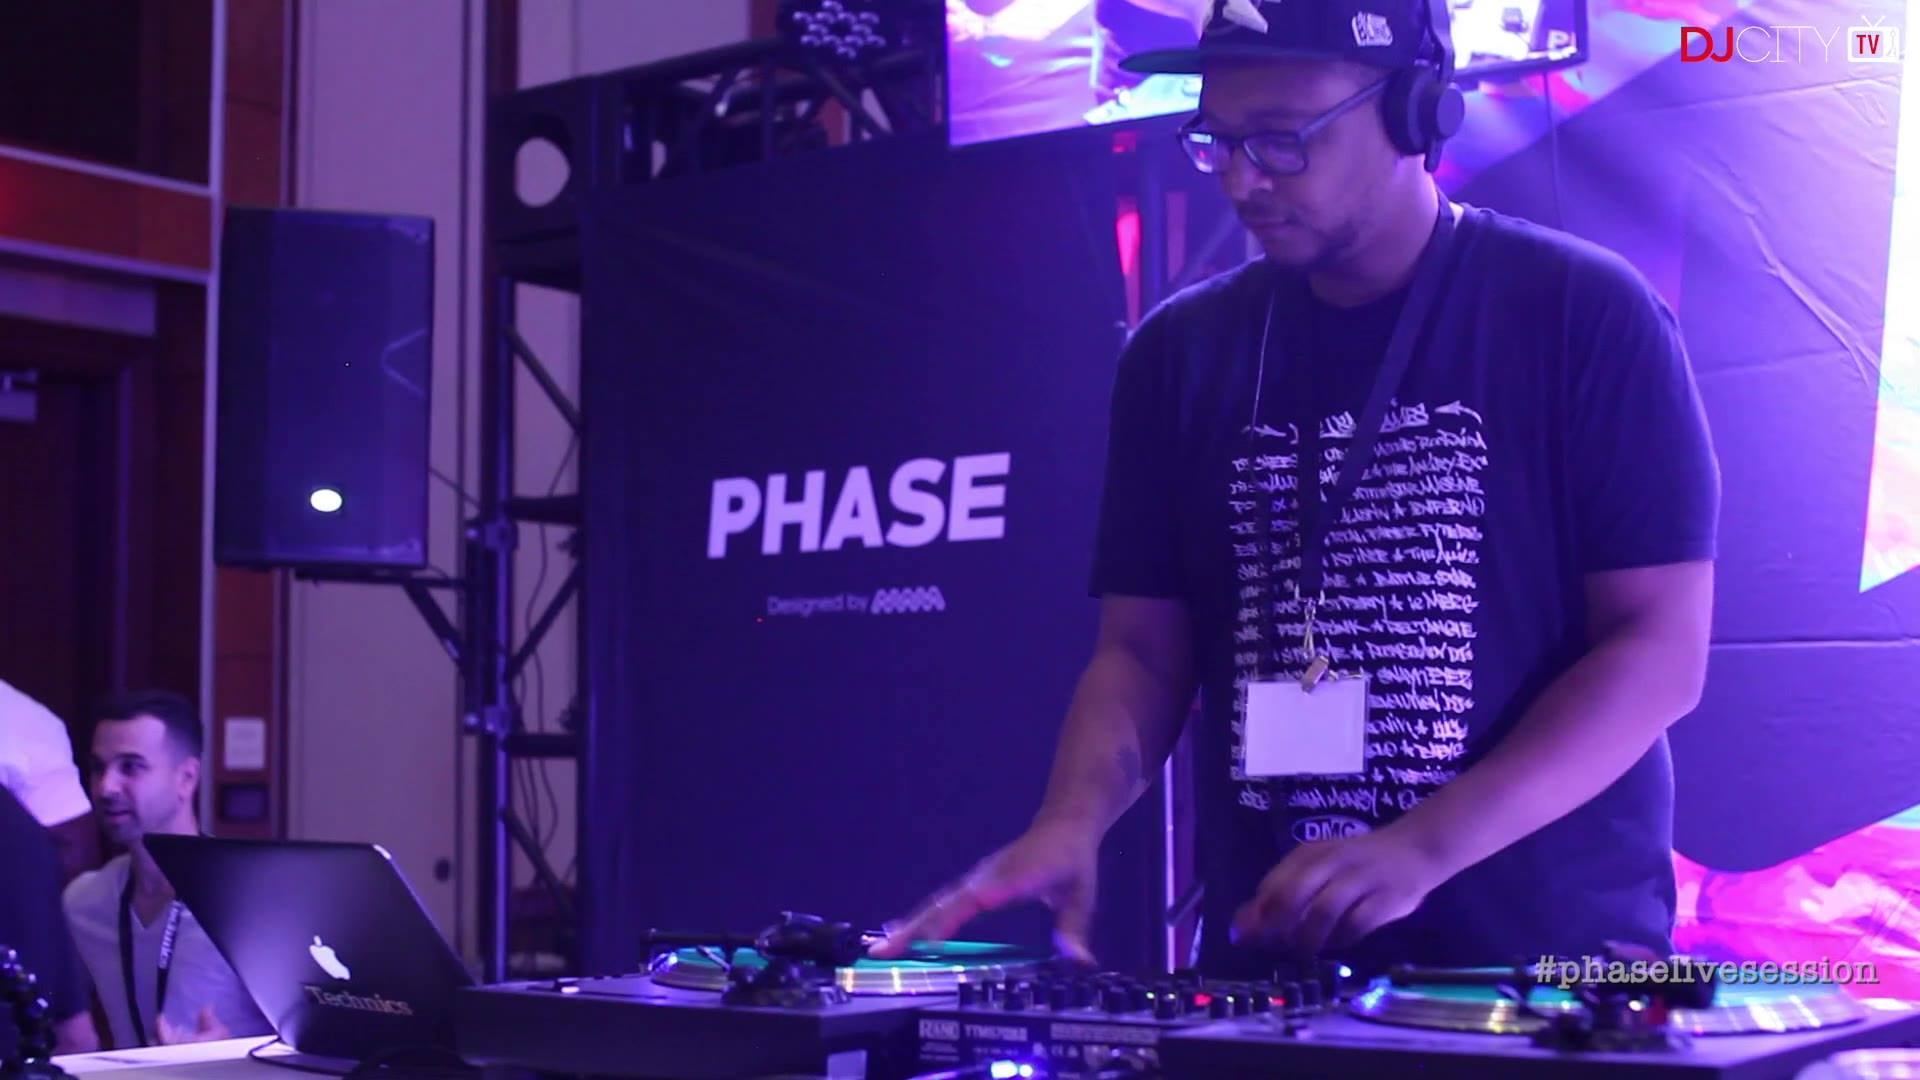 Watch: Behind-the-Scenes at Phase's 'Live Session - Launch Tour'